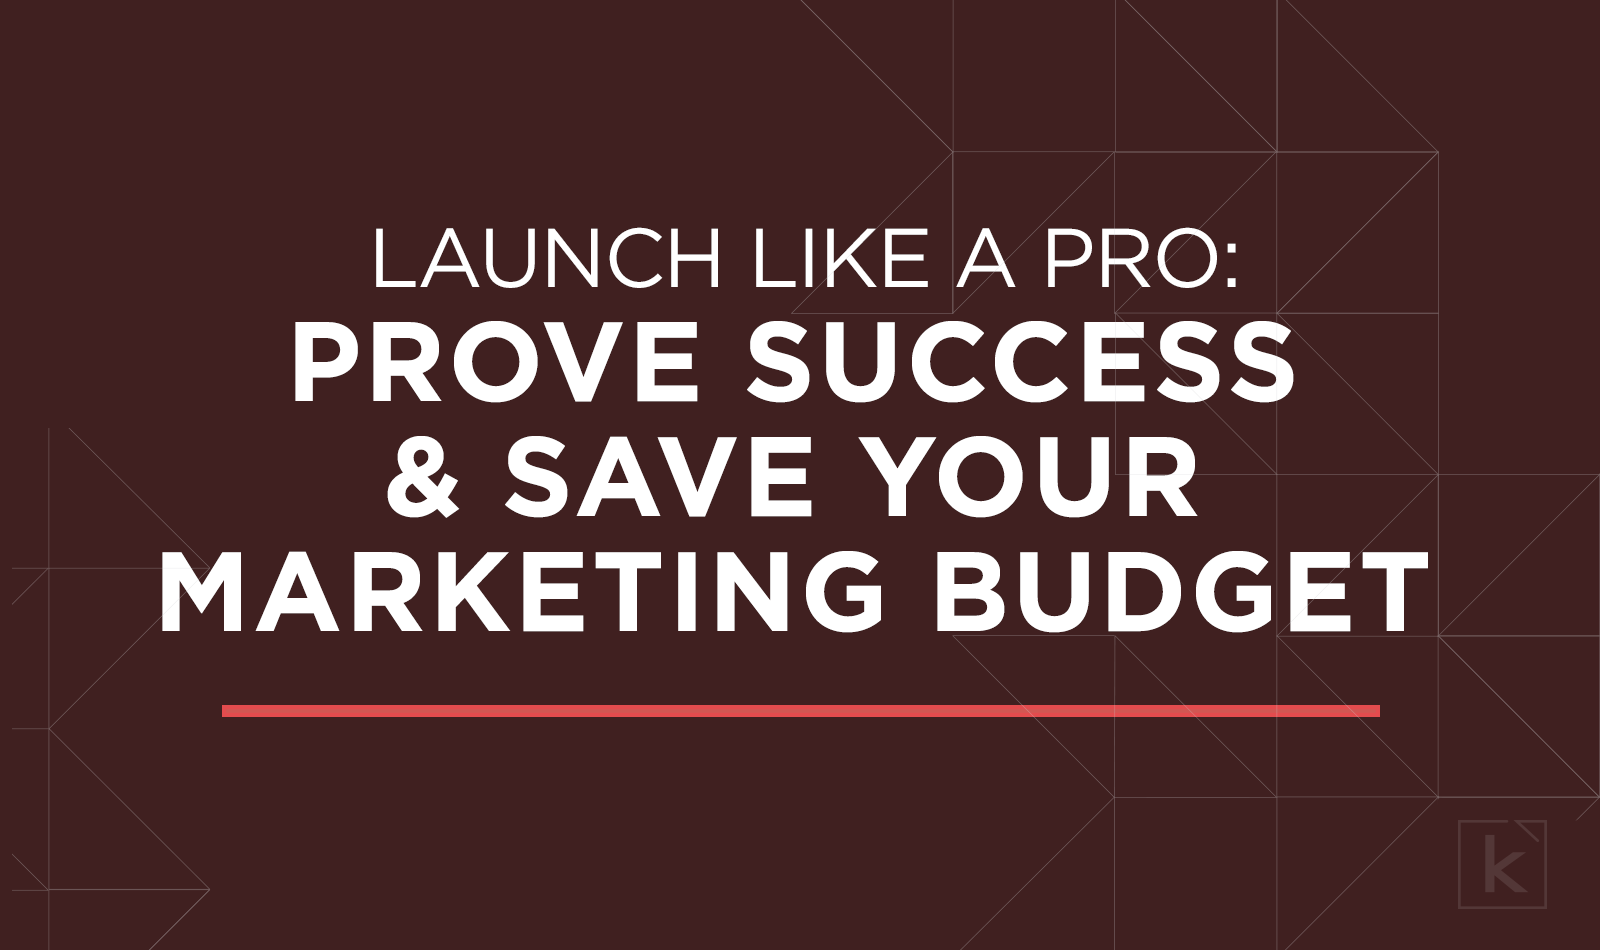 prove-success-save-marketing-budget